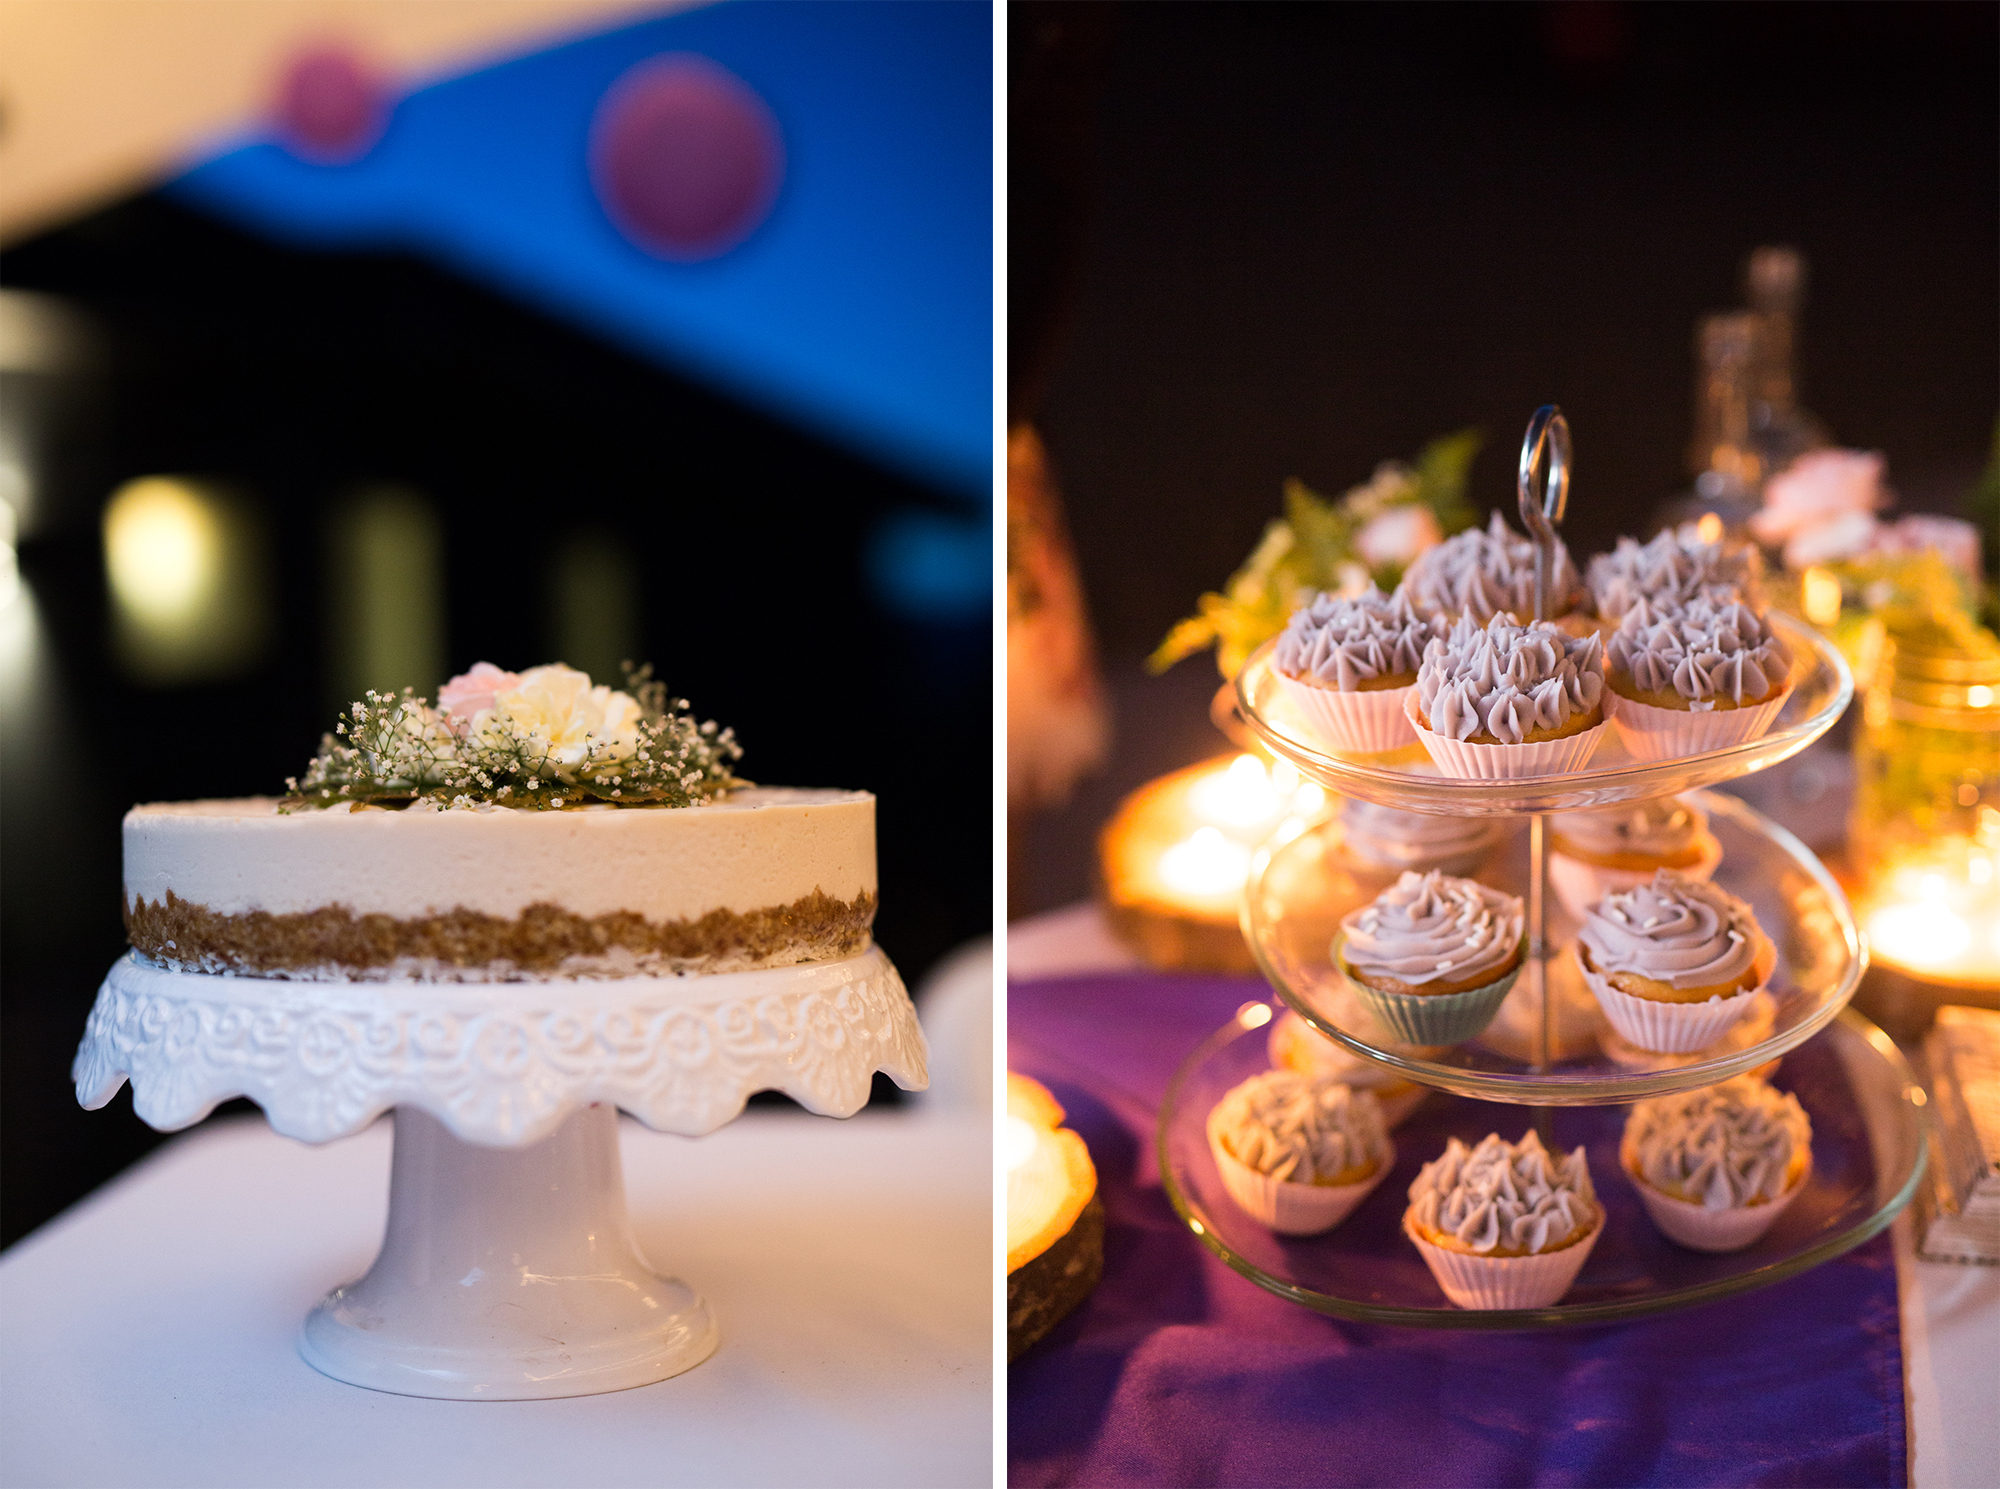 Cake Cupcakes Hope Wedding British Columbia American Creek Lodge Zsuzsi Pal Photography